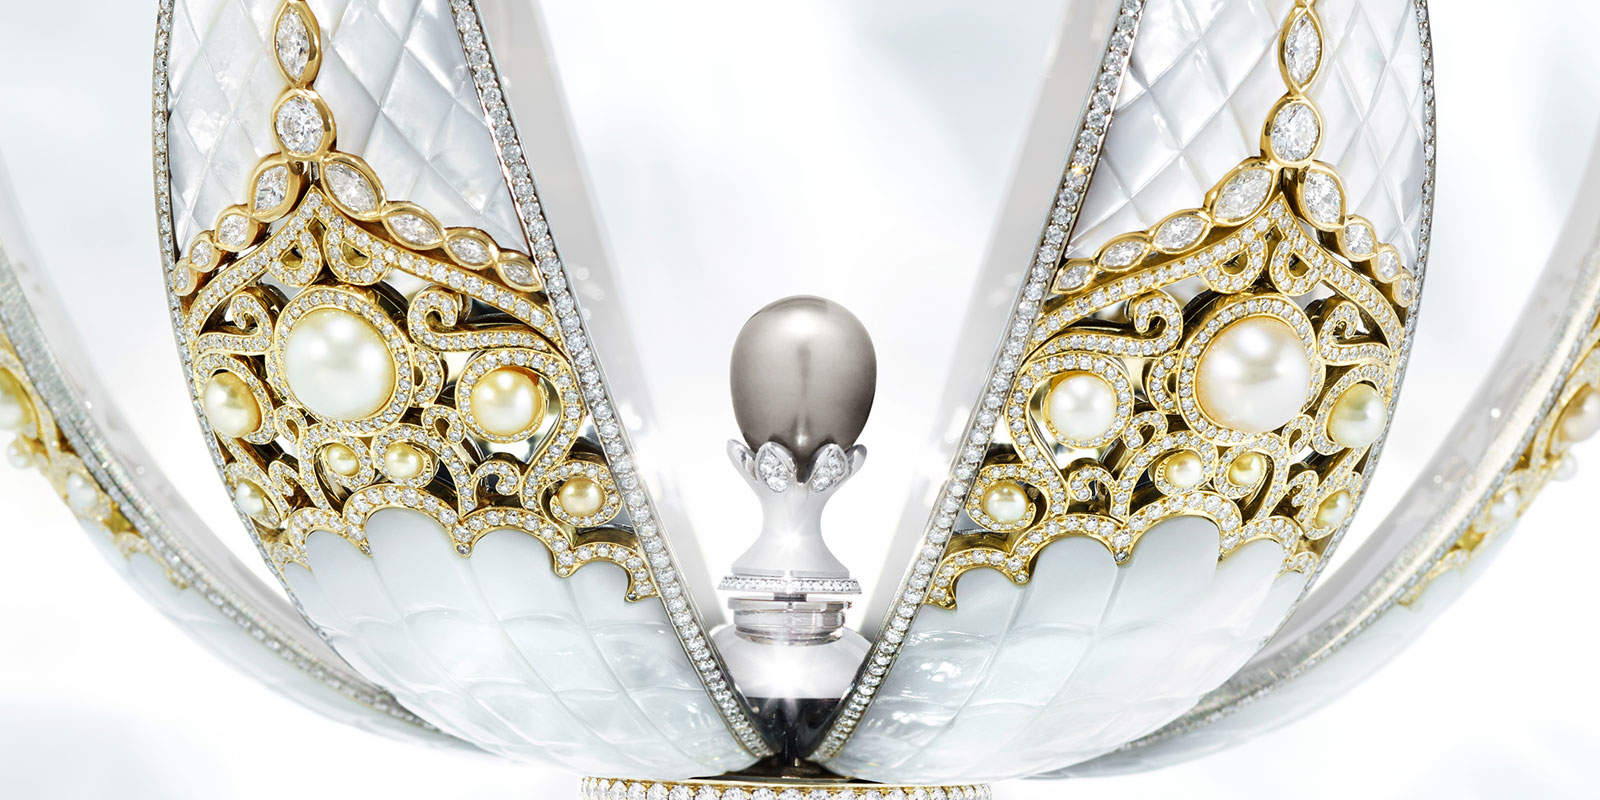 Close up view of the Faberge Pearl Egg in open-state, with pearls, white diamonds, and mother of pearl exterior